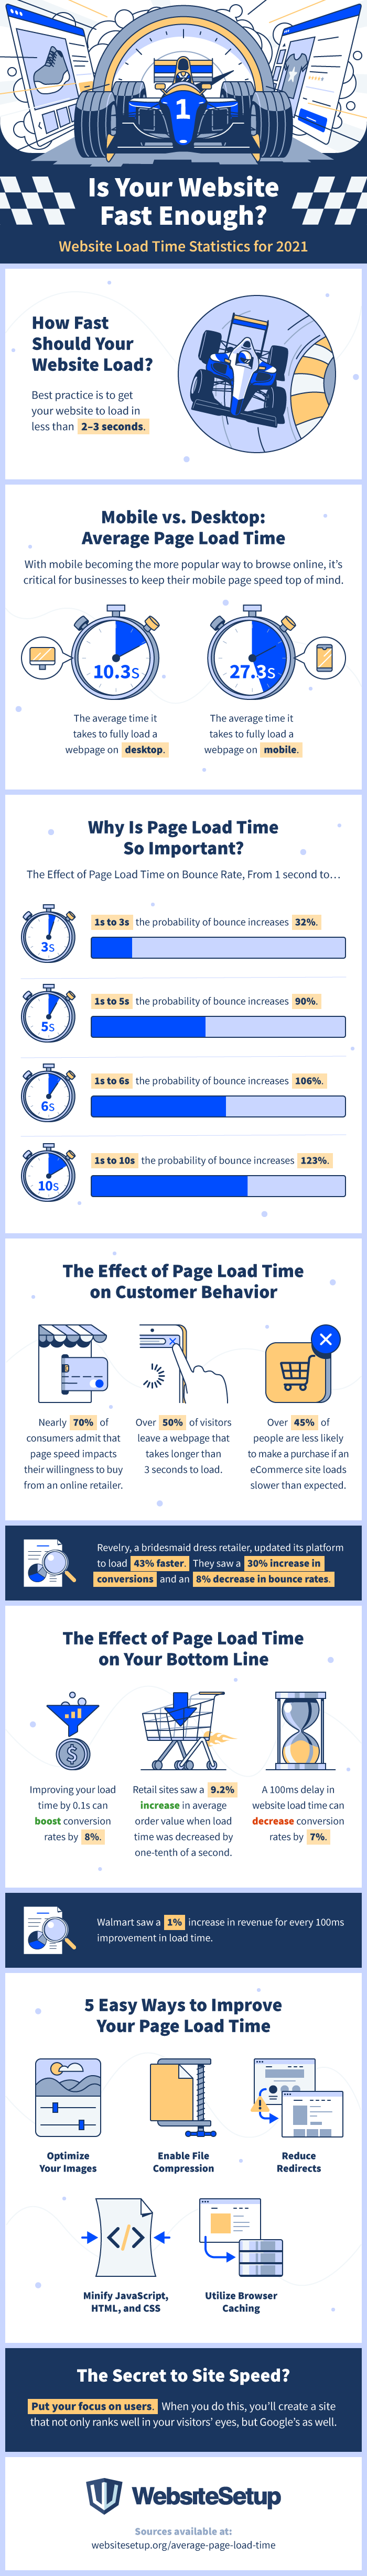 How Website Load Times Affect Businesses in 2021 - Infographic